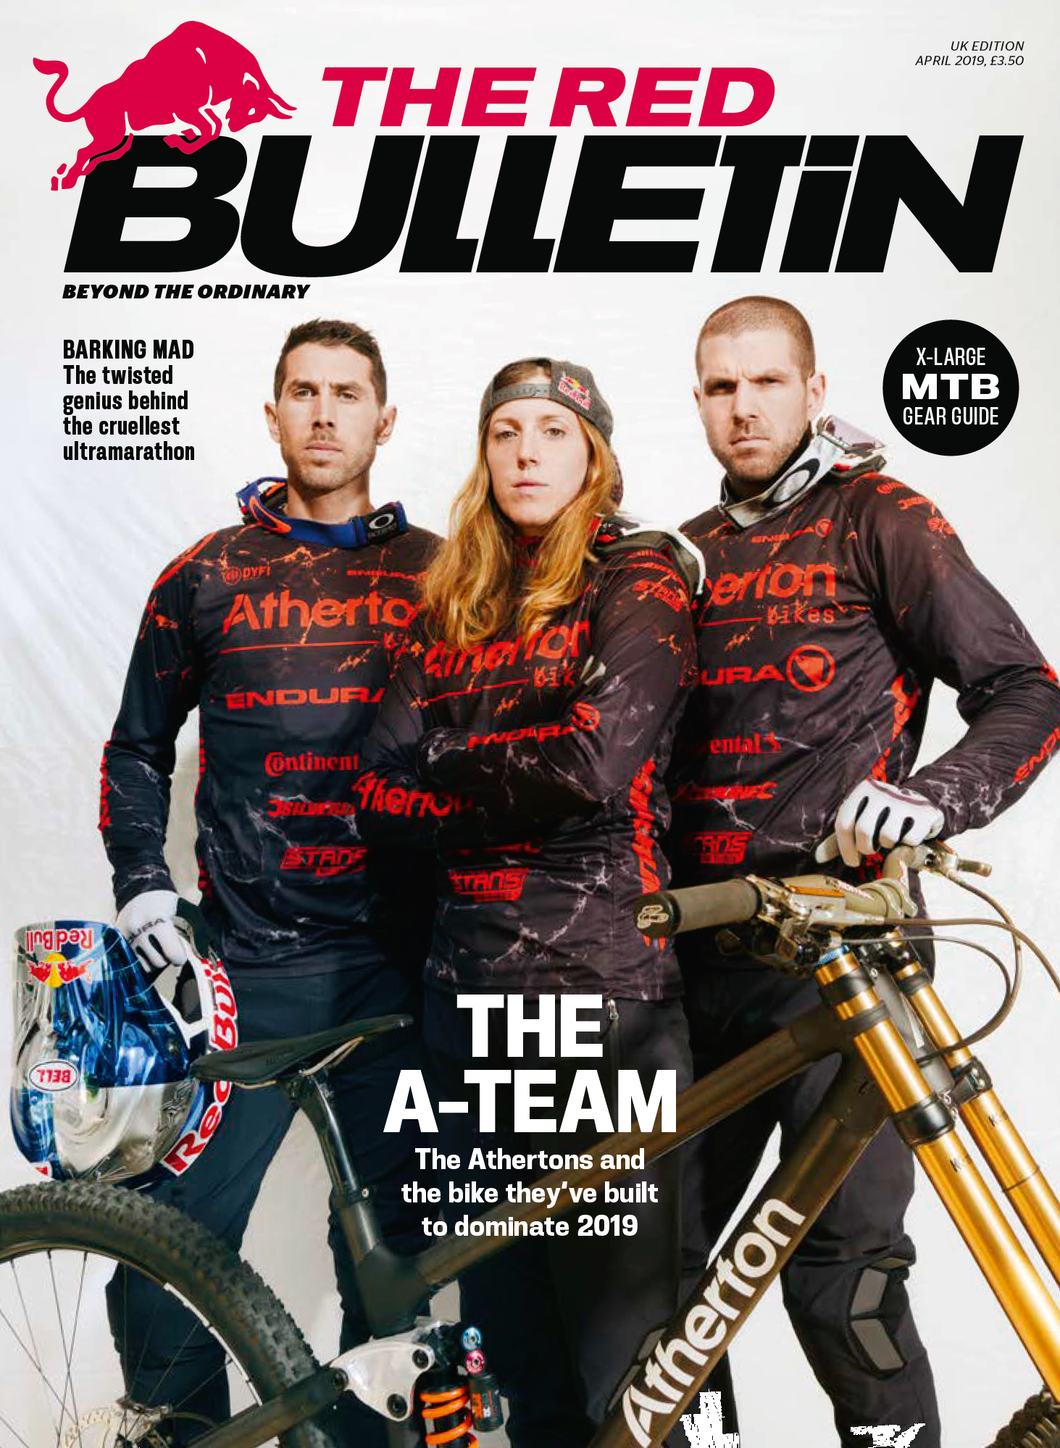 Red Bulletin - The Art of Reinvention